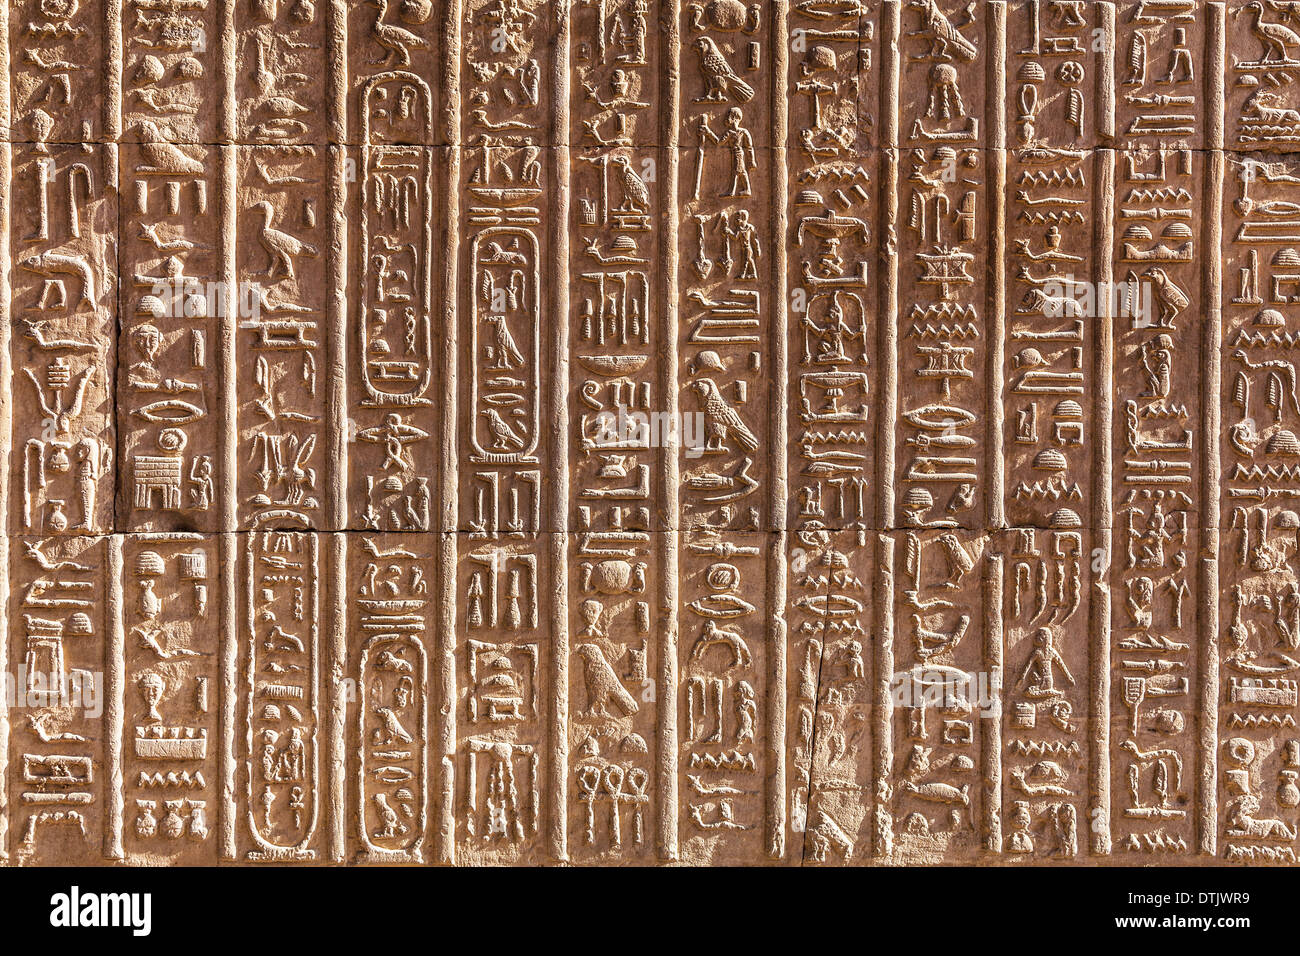 Bas relief hieroglyphic carvings on a wall of the ancient